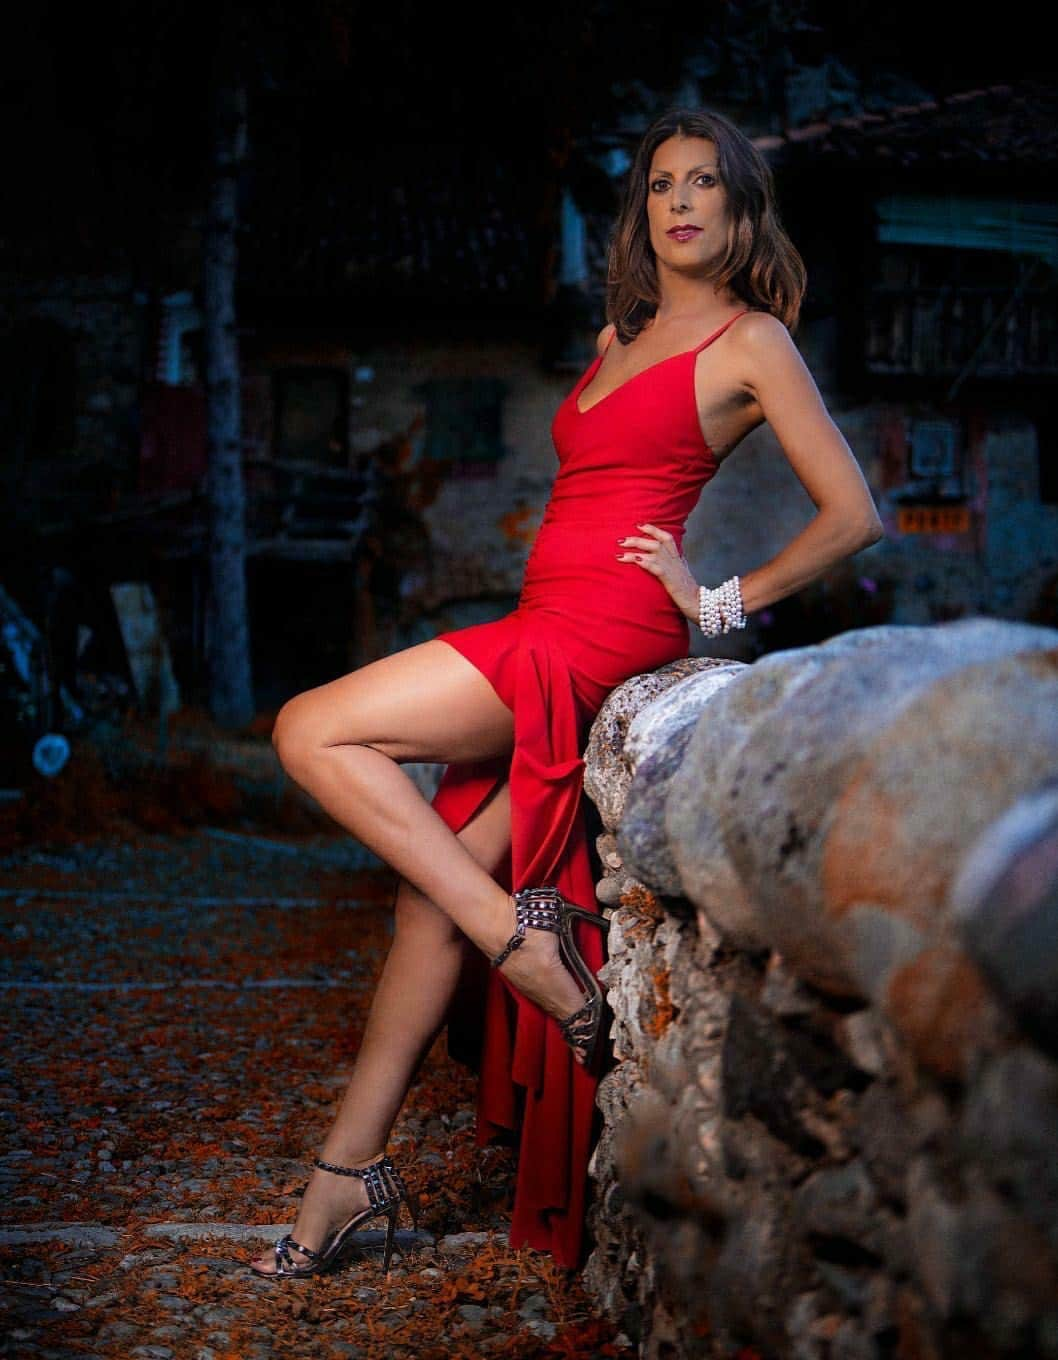 Beautiful Italian mature model and dancer Monica Fefe Soleil @fefe_soleil wearing a red open dress and high heels showing her long sexy bare legs